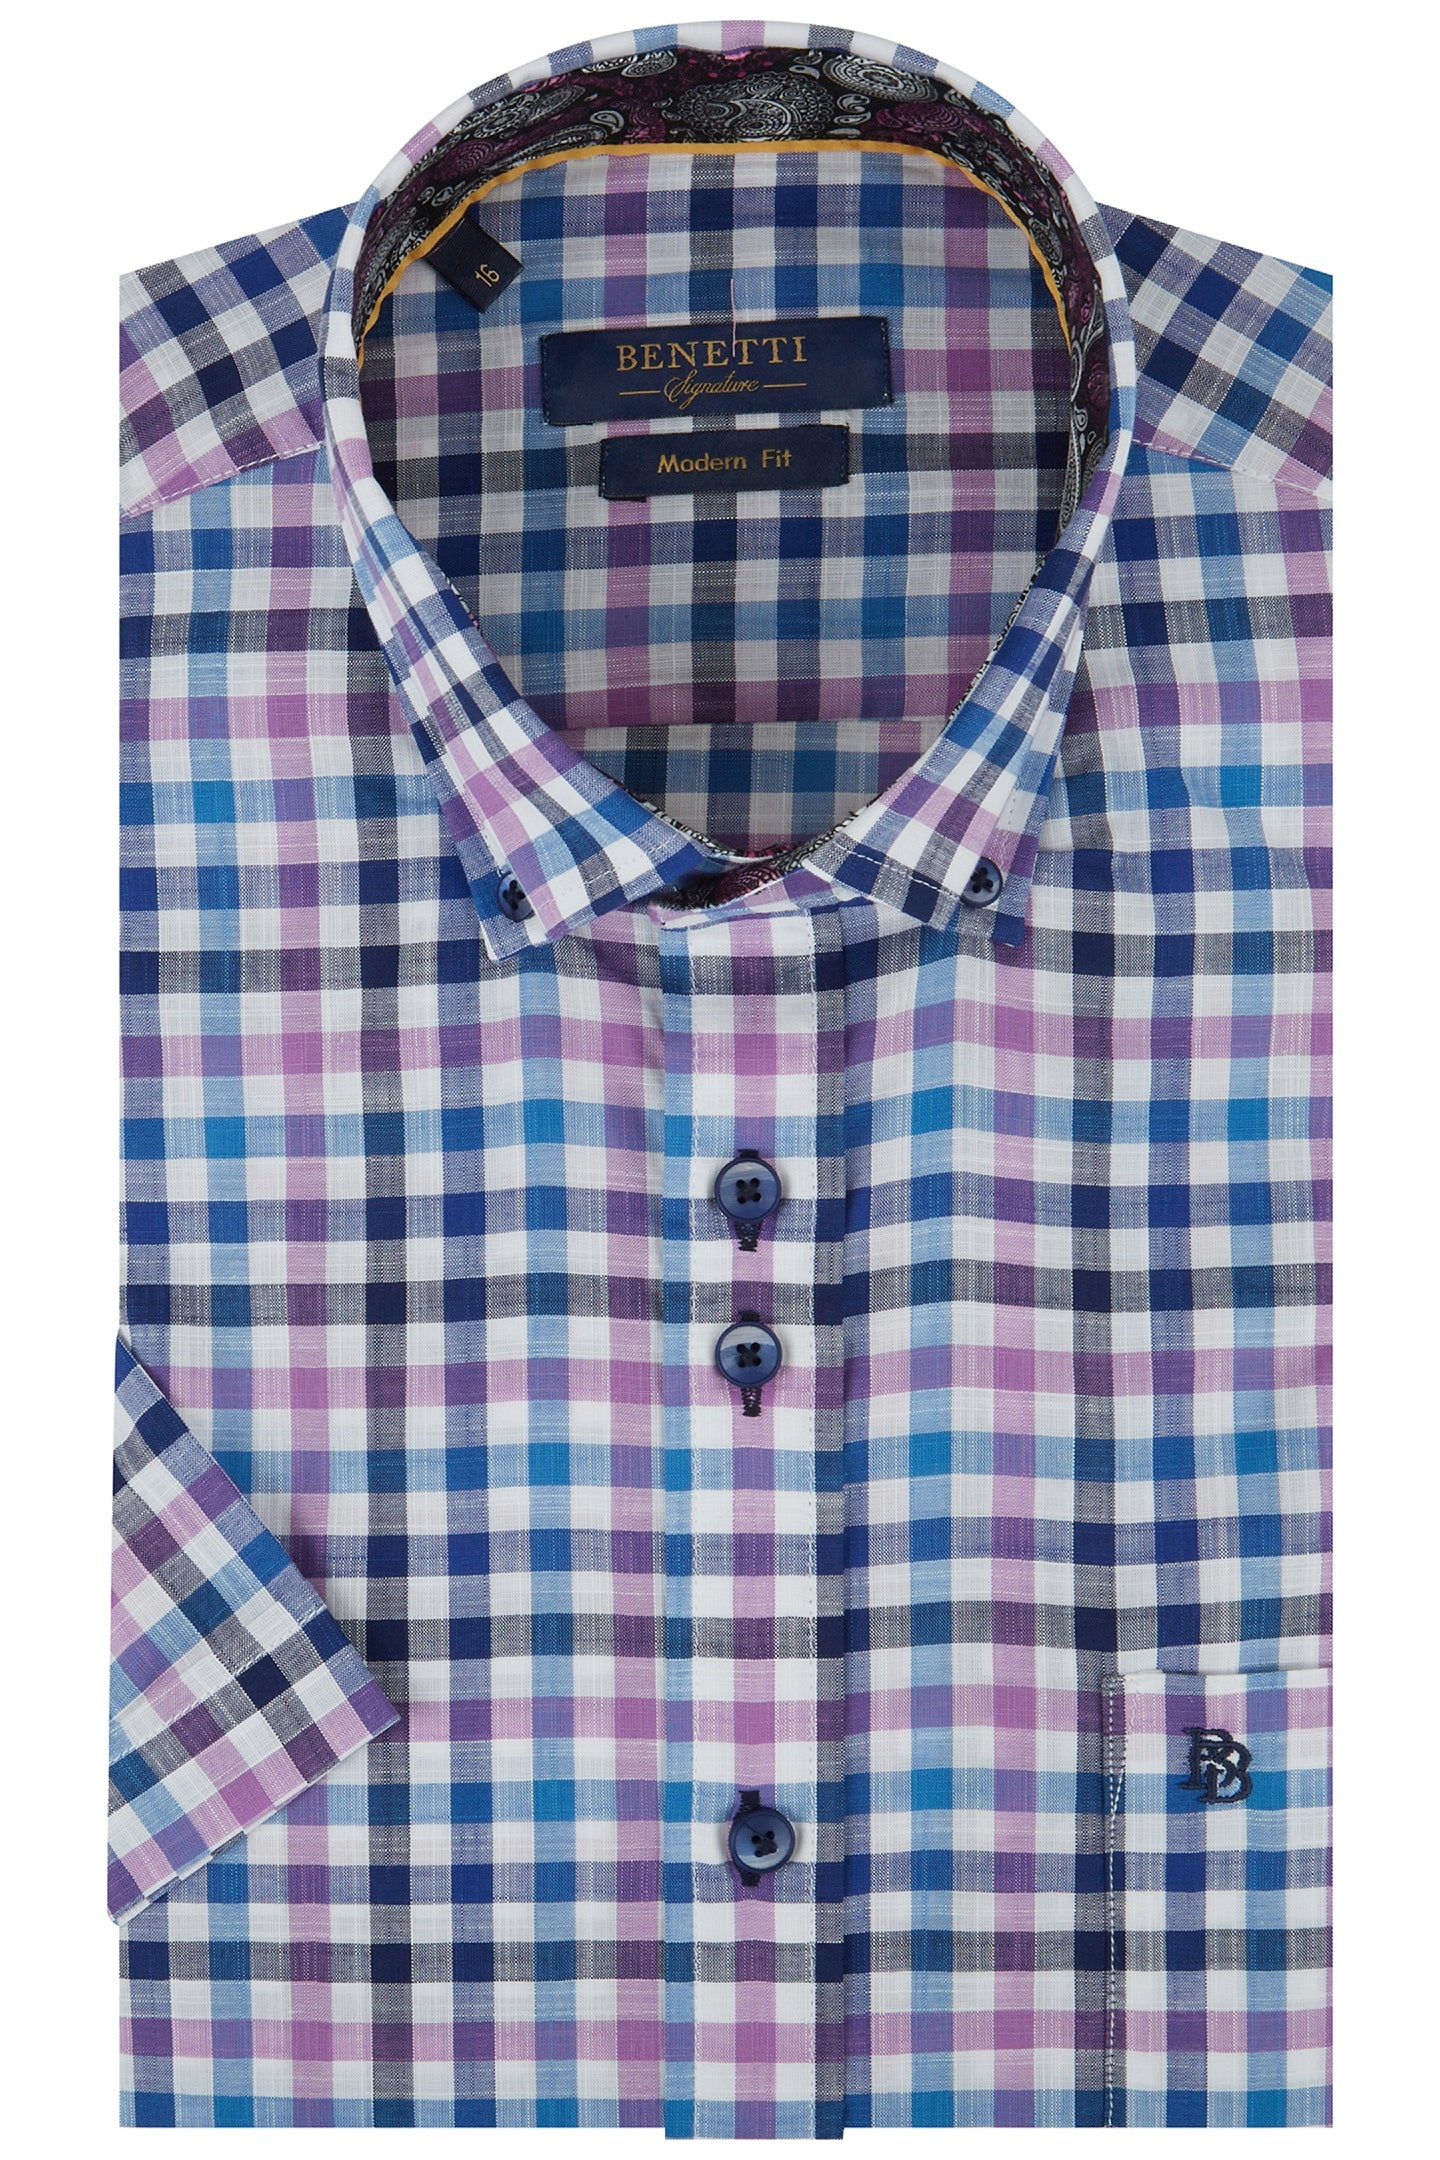 Benetti Gary Short Sleeve Check Shirt